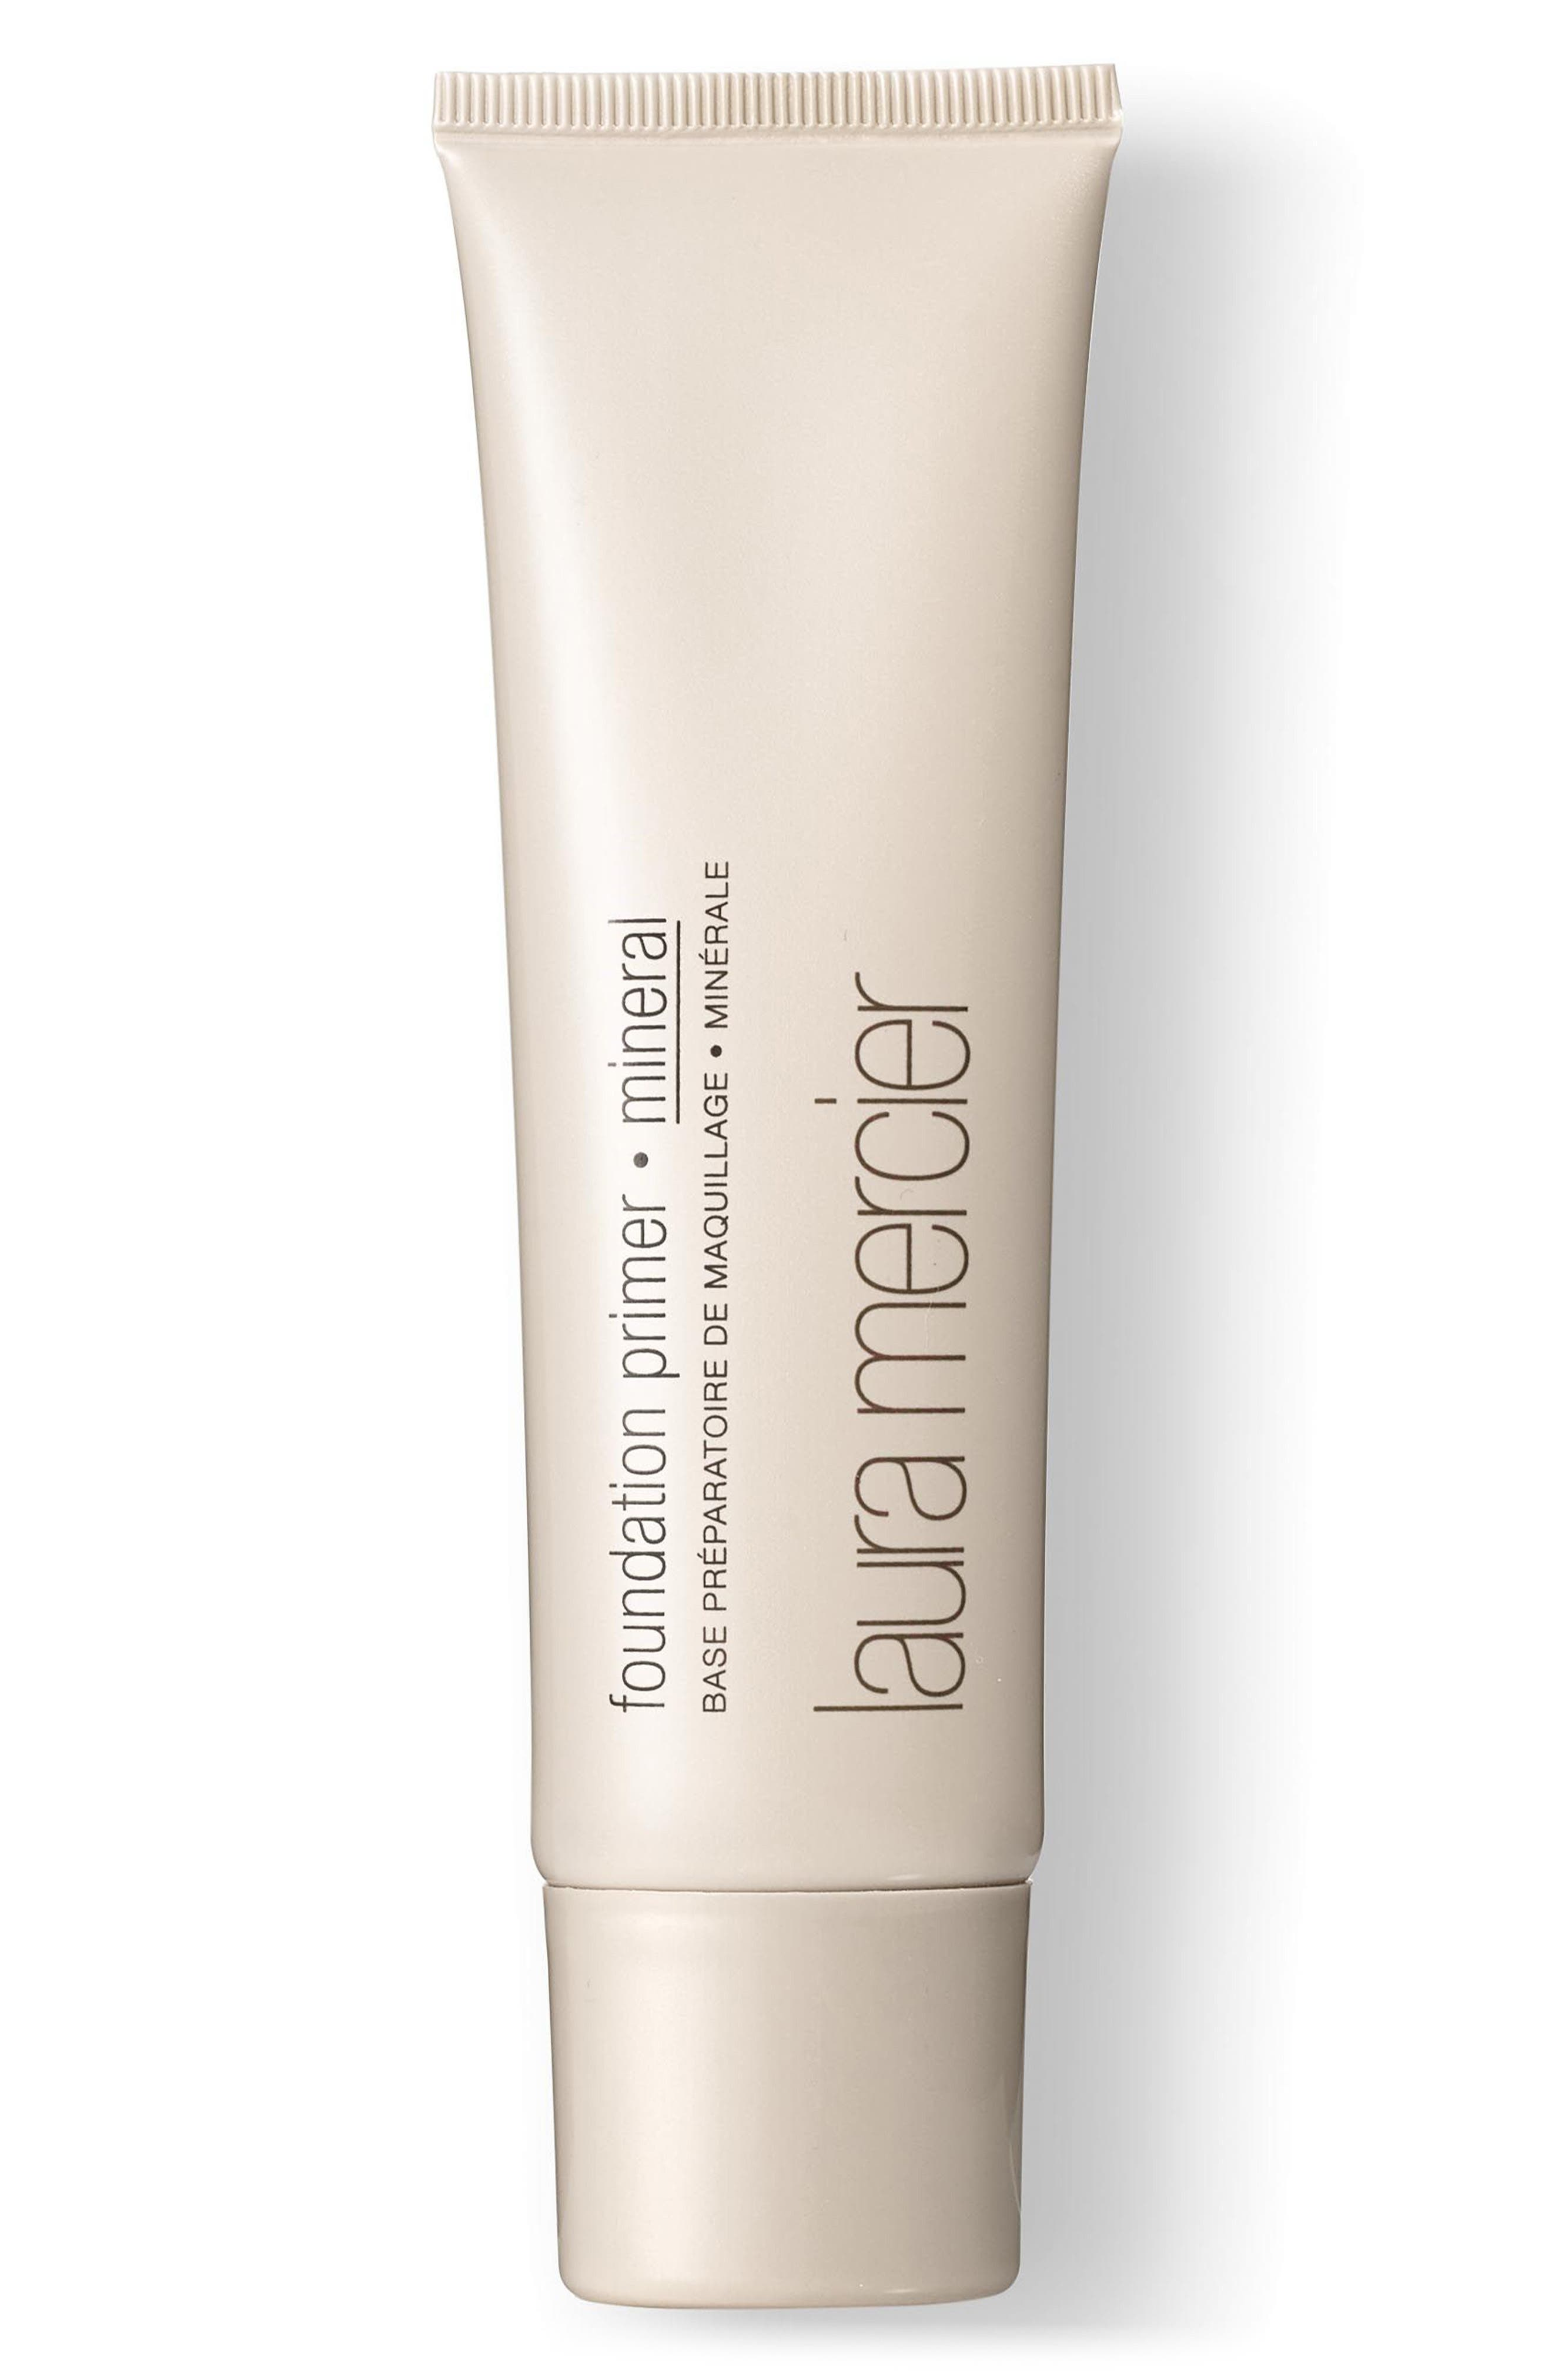 Main Image - Laura Mercier 'Mineral' Foundation Primer (1.7 oz.)